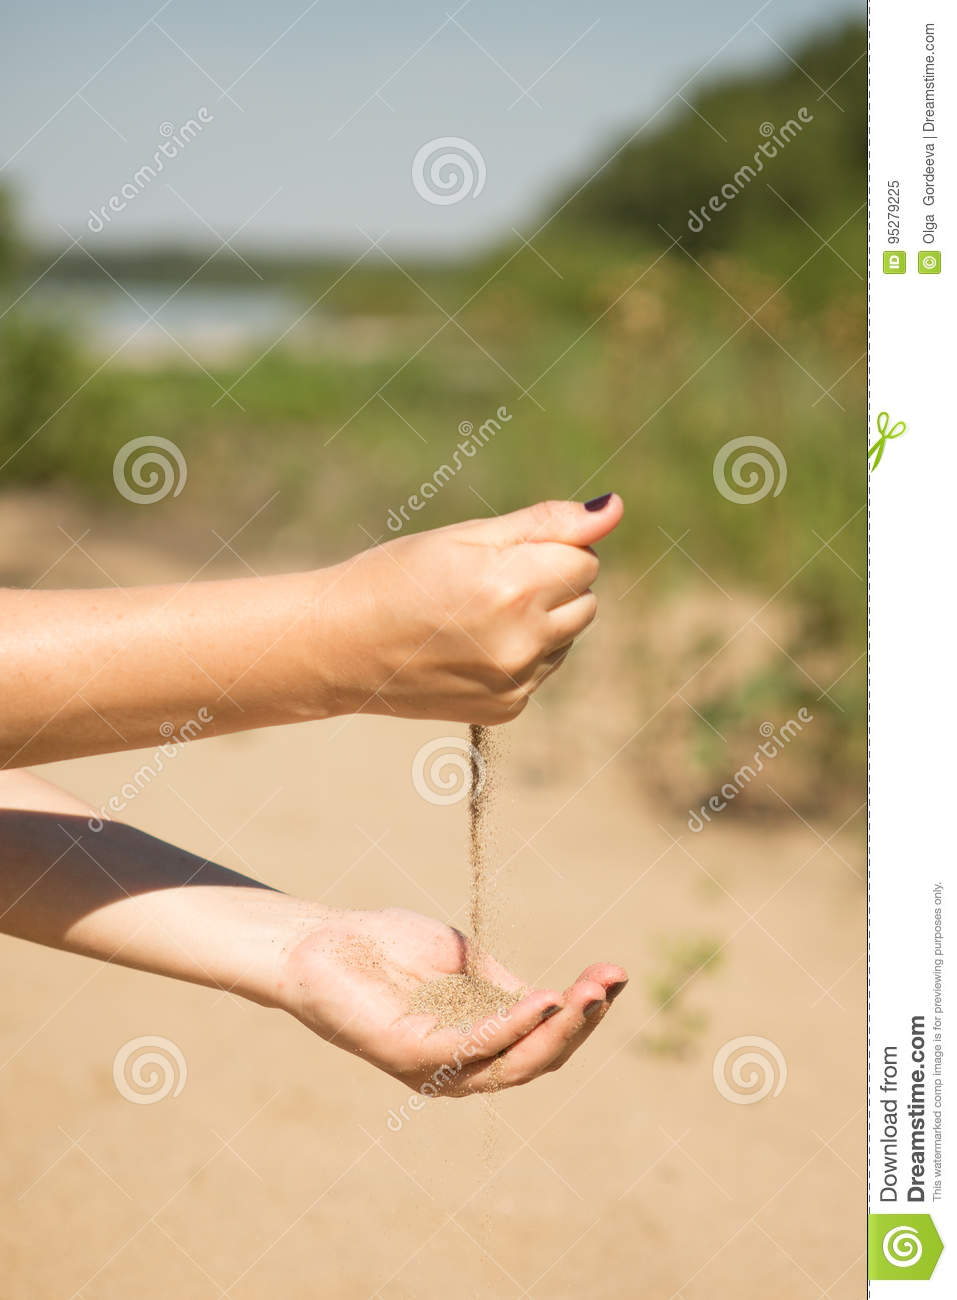 c2b56e9a4 Sand Running Through Hands Of Woman Stock Image - Image of fade ...